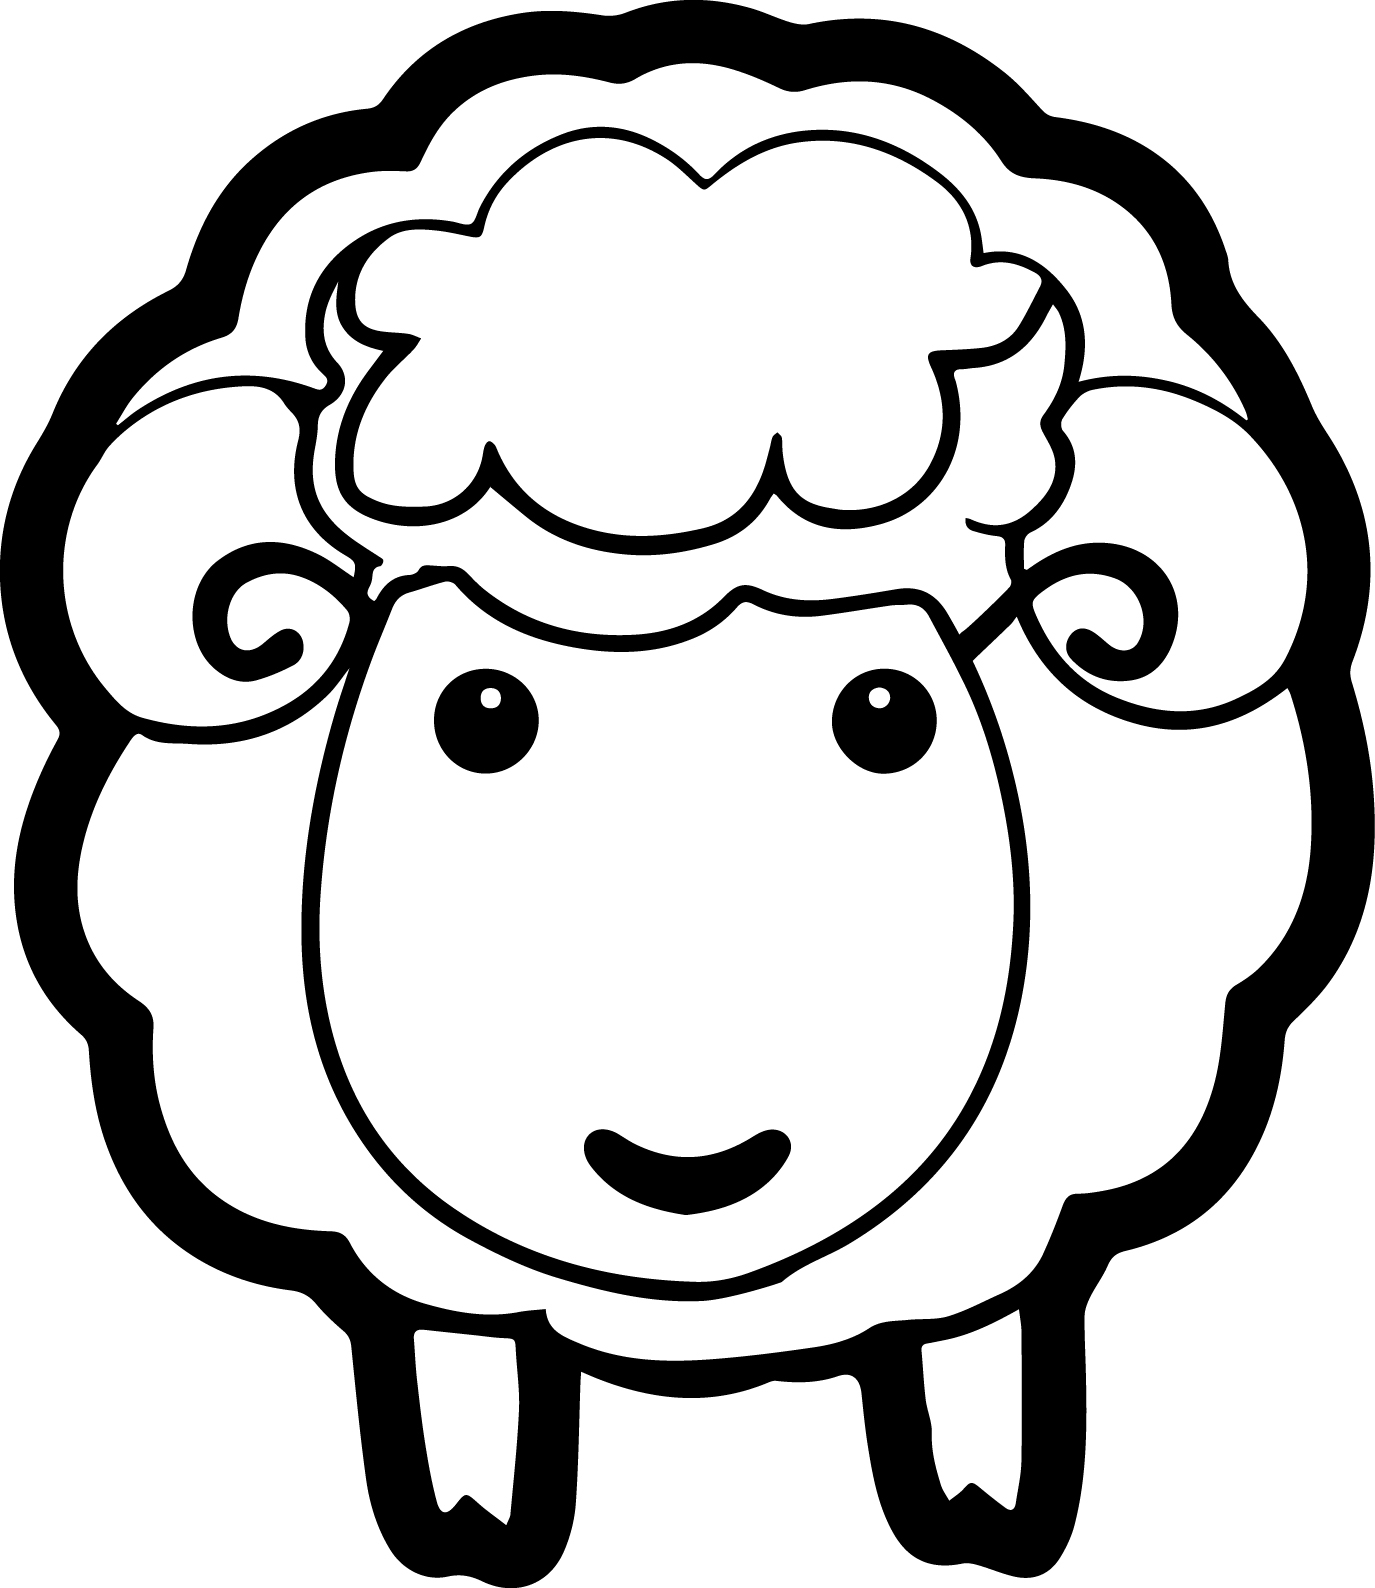 1375x1588 Innovative Sheep Coloring Pages To Print Year